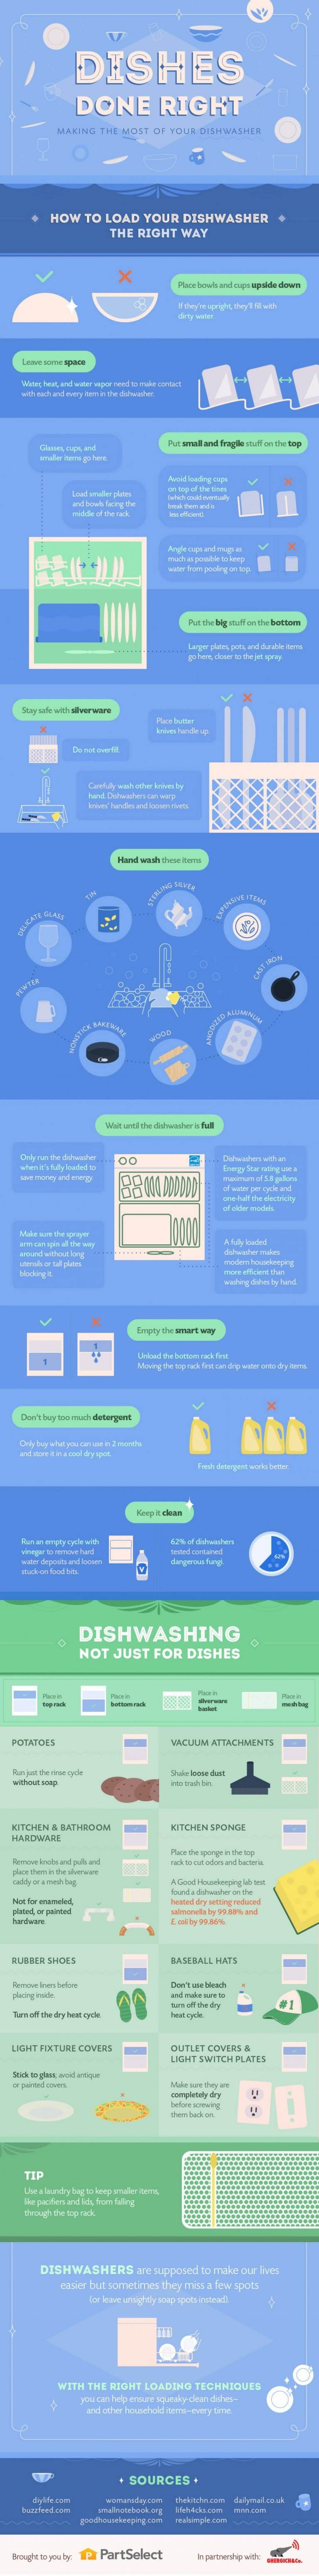 Dishes Done Right: Making the Most of Your Dishwasher #infographic